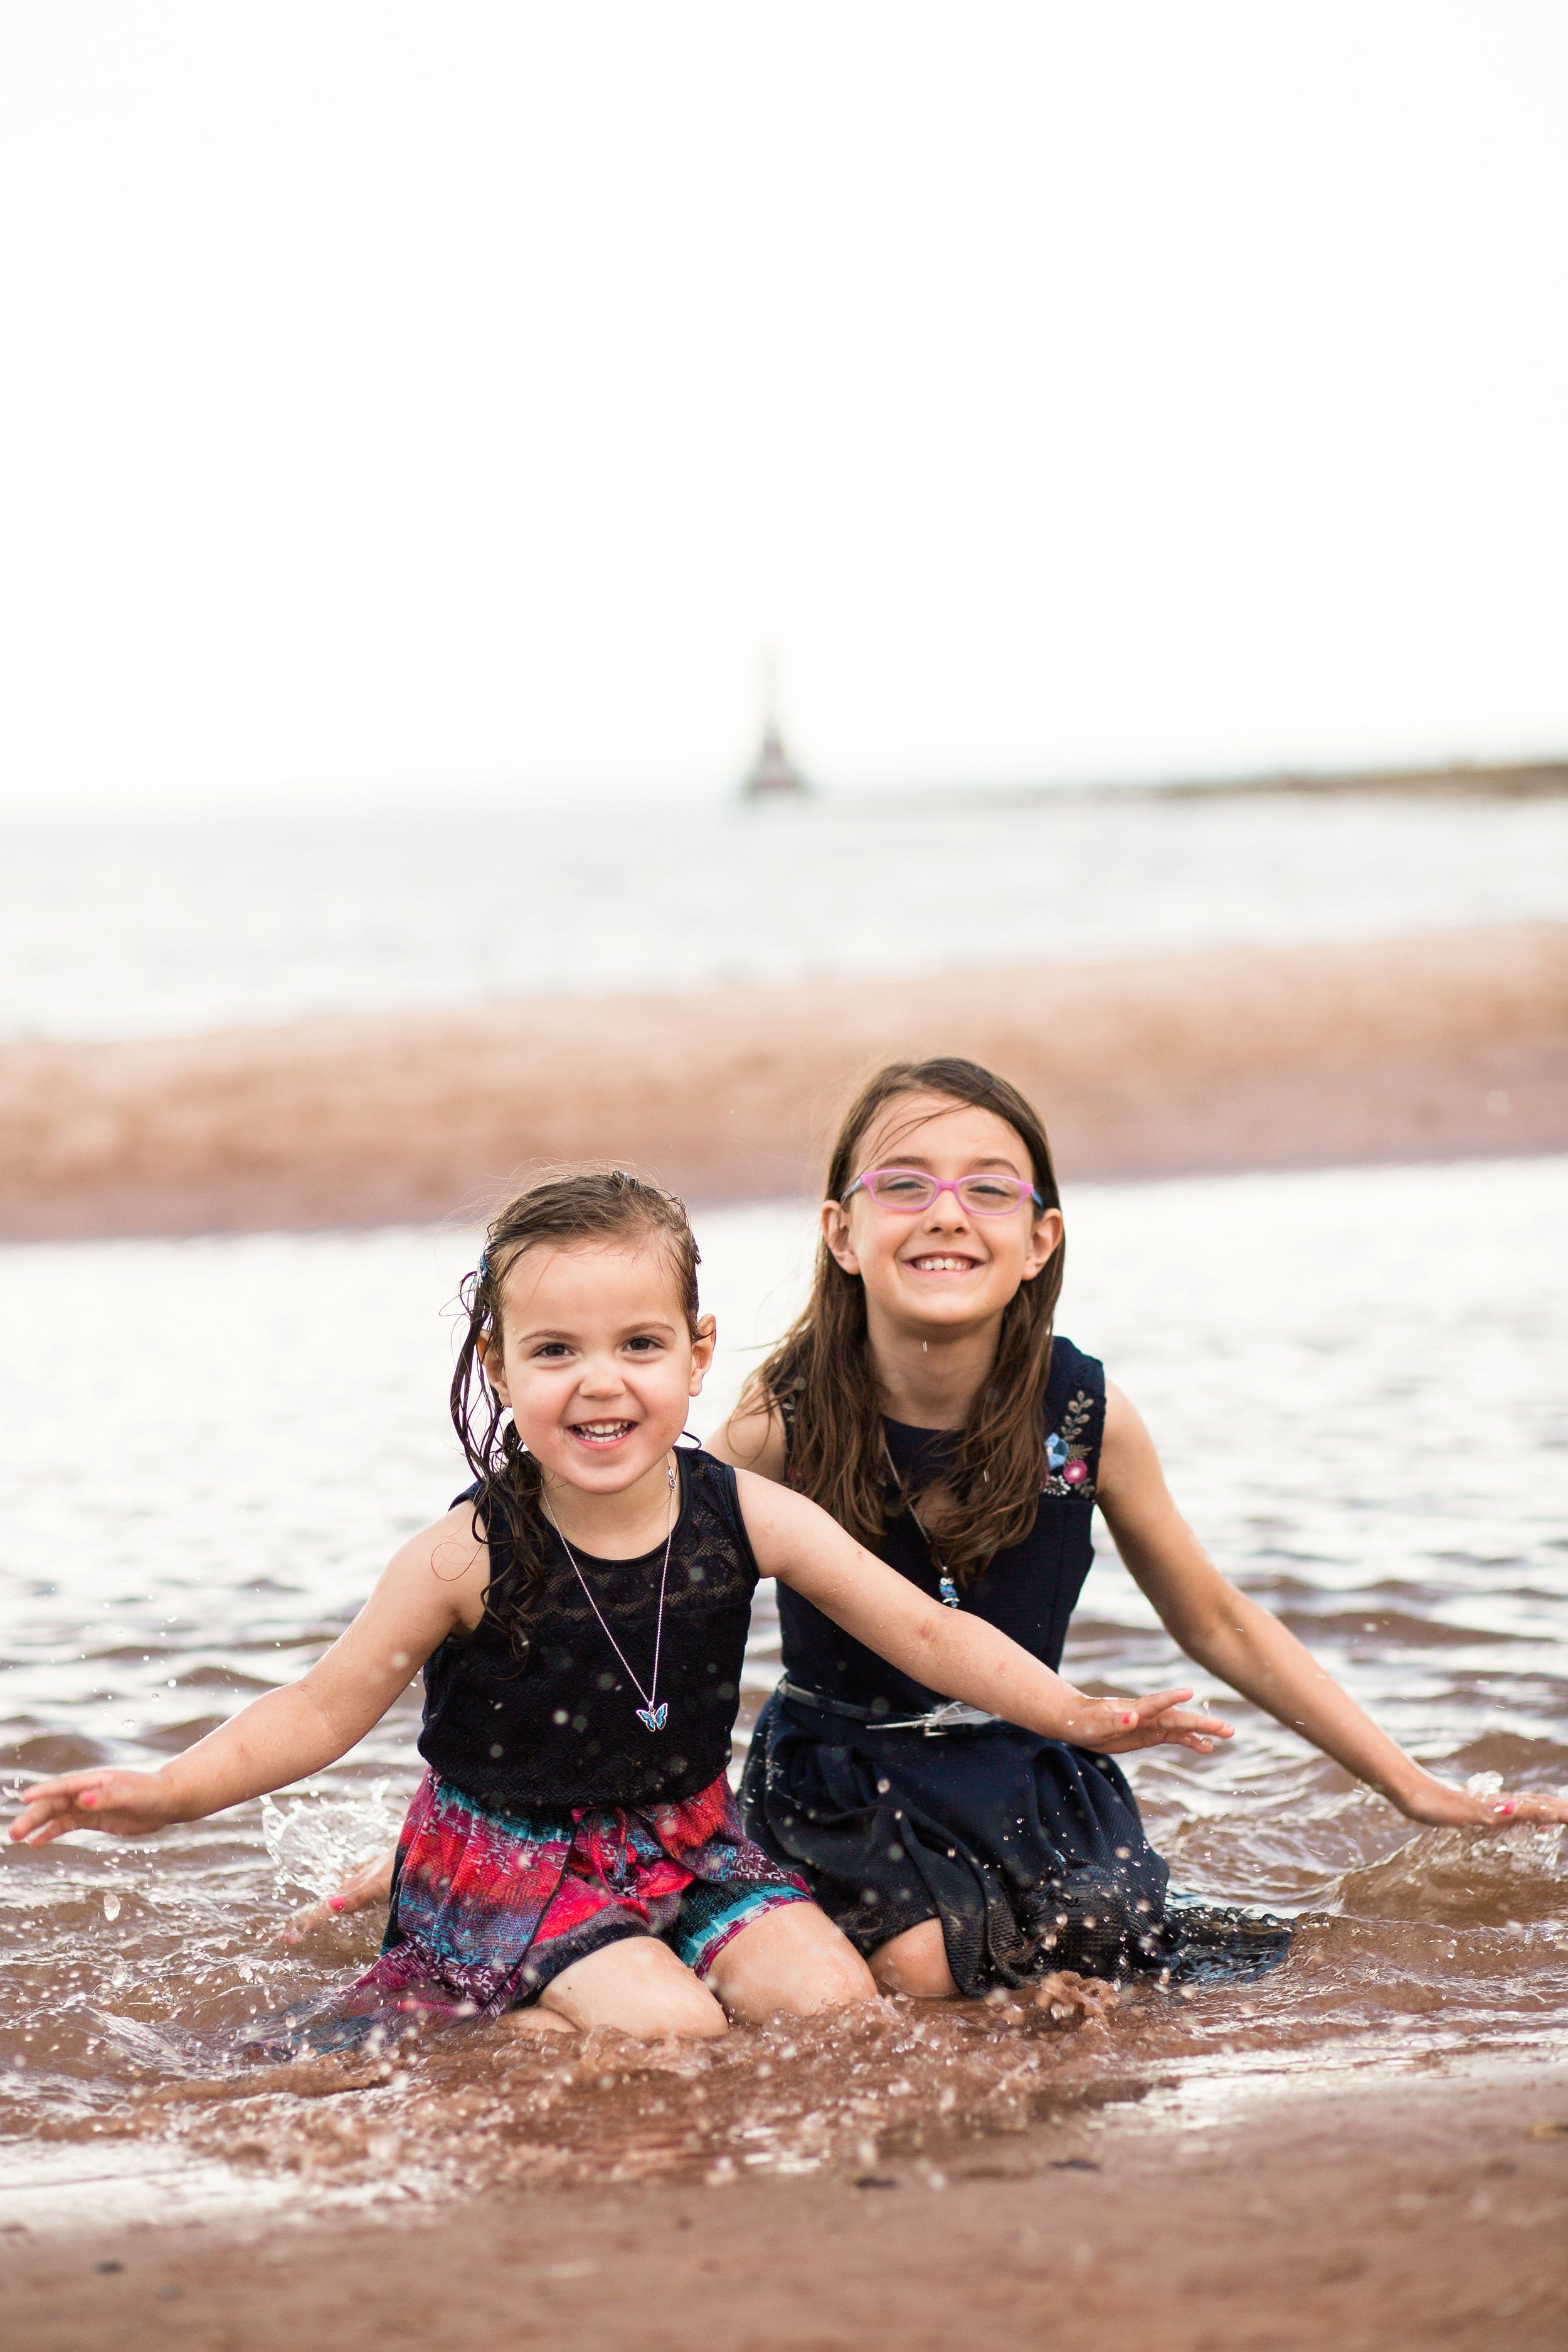 Fun Kids Beach Portraits Lifestyle Photography by Seattle WA Portrait Photographer Janelle Elaine.jpg